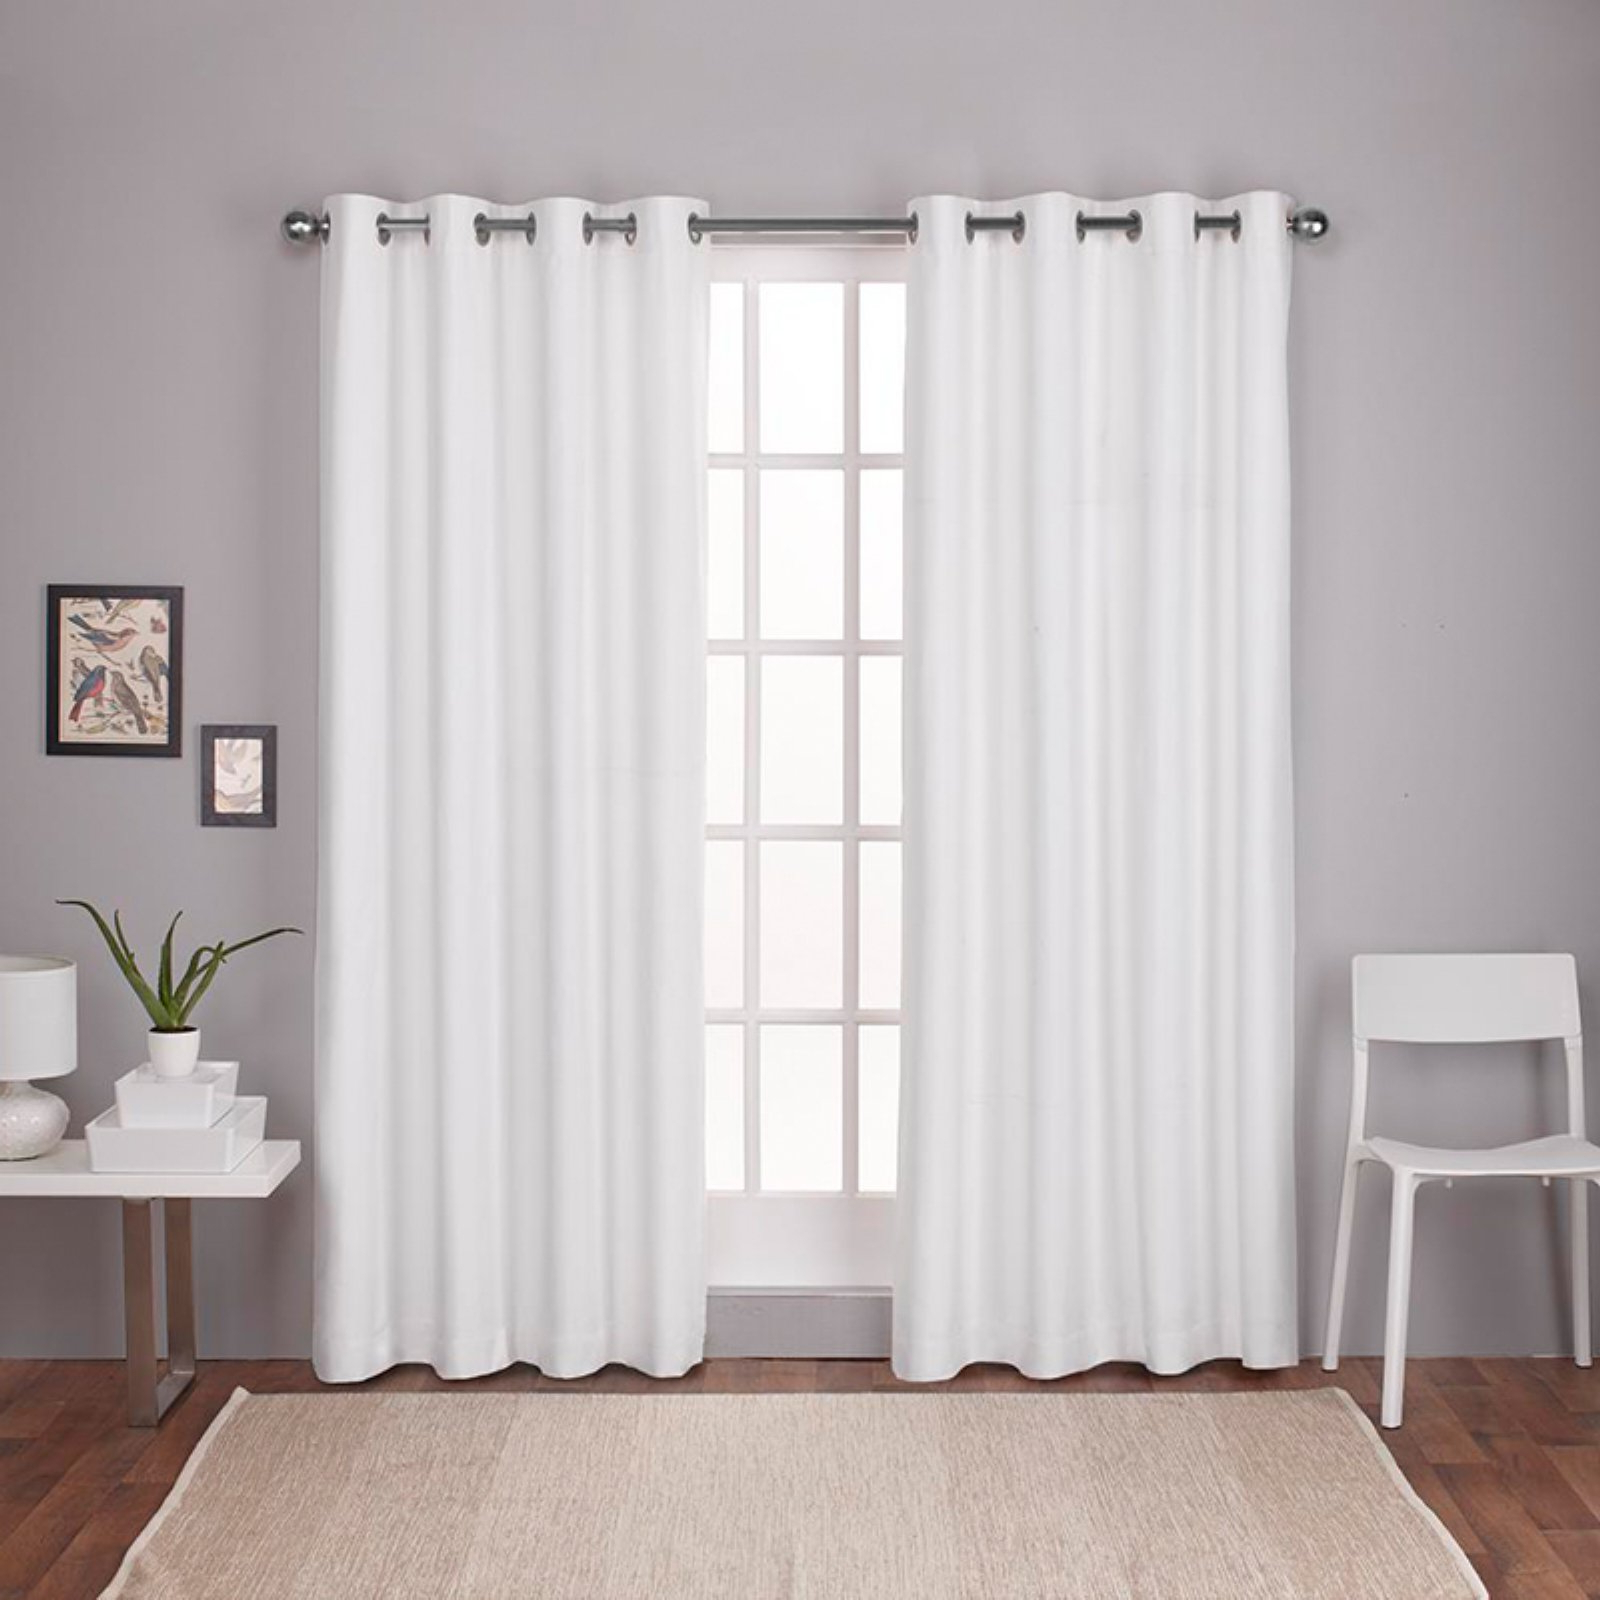 Preferred Thermal Textured Linen Grommet Top Curtain Panel Pairs Throughout Exclusive Home Curtains 2 Pack London Textured Linen Thermal Grommet Top Curtain Panels (View 2 of 20)